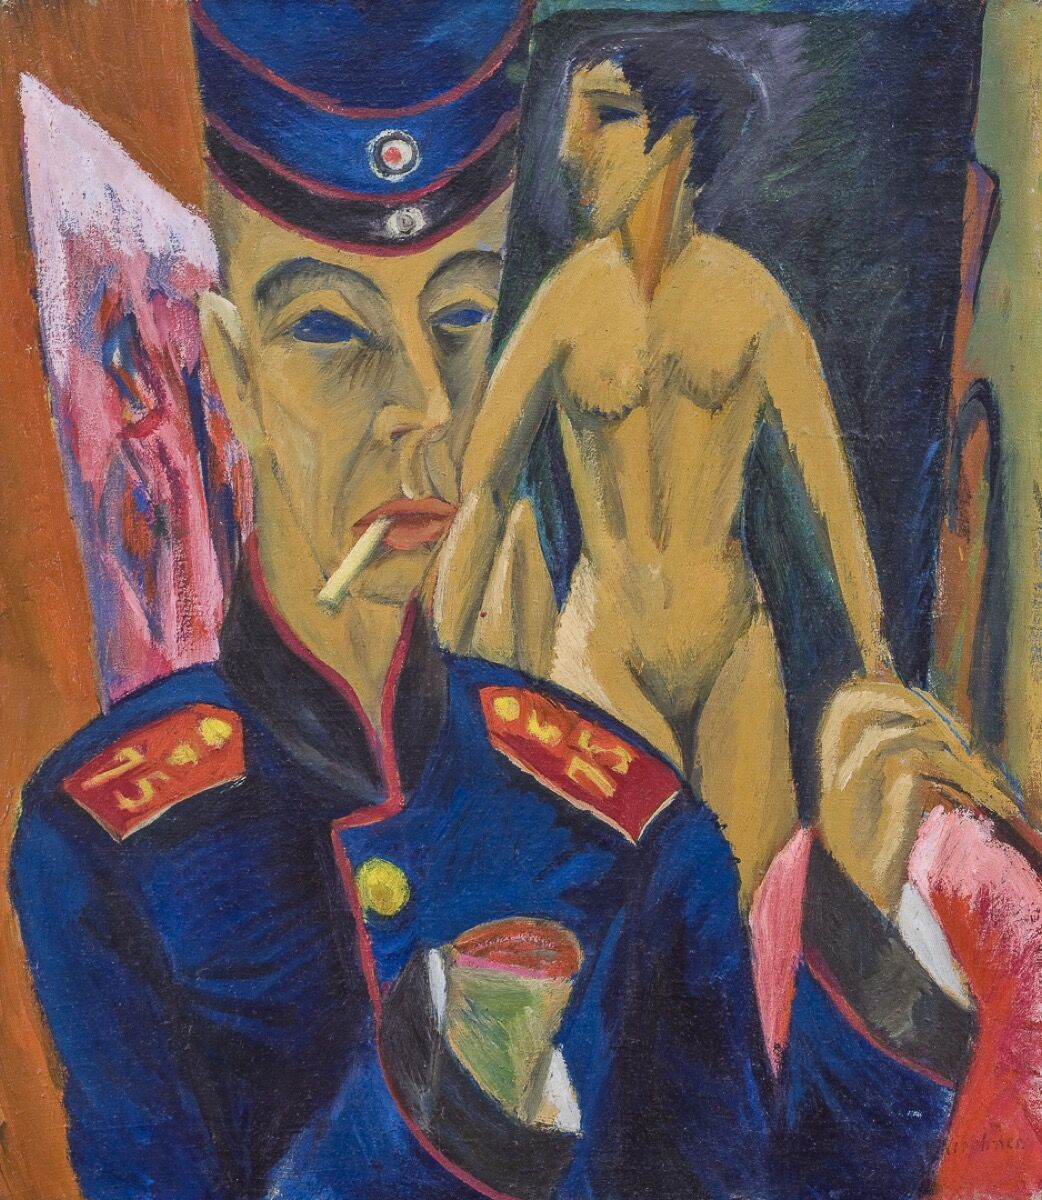 Ernst Ludwig Kirchner, Self-Portrait as a Soldier, 1915. Courtesy of the Allen Memorial Art Museum, Oberlin College.